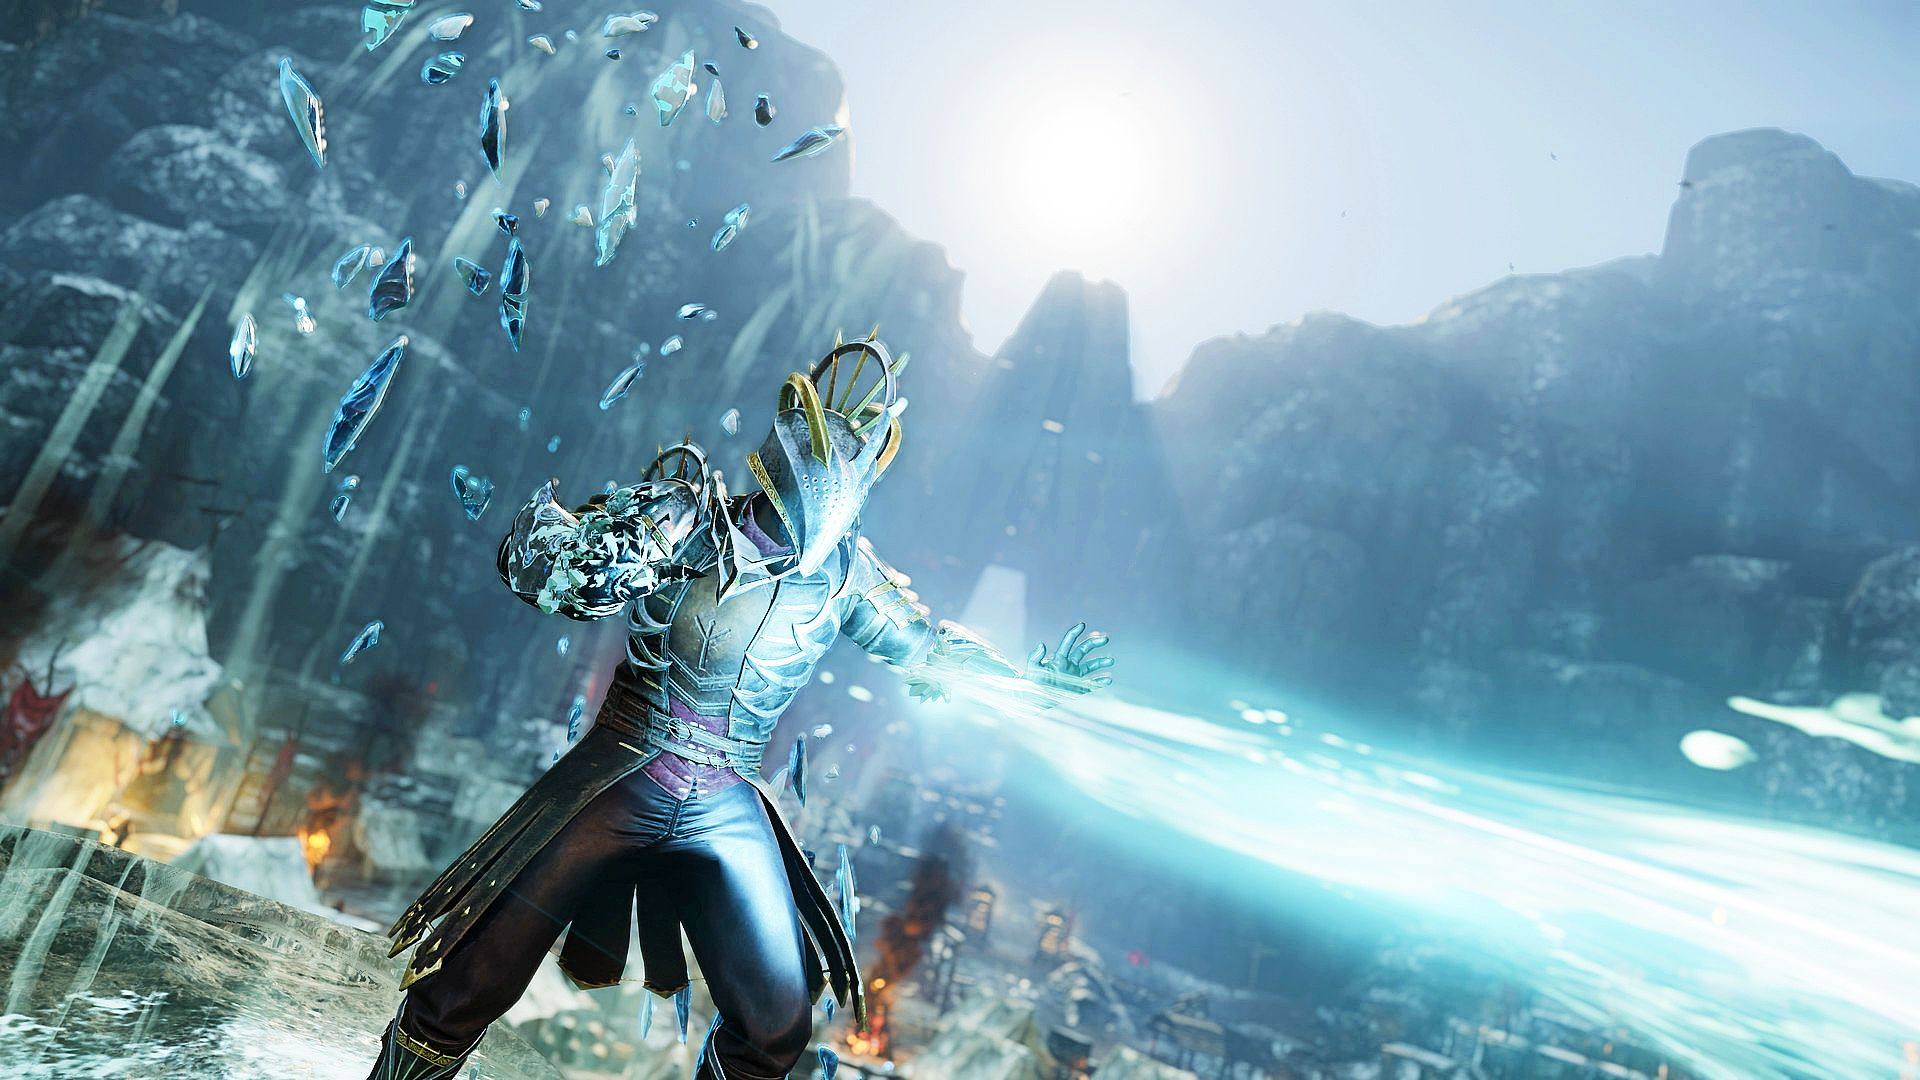 New World review in progress – a flawed, but promising MMO